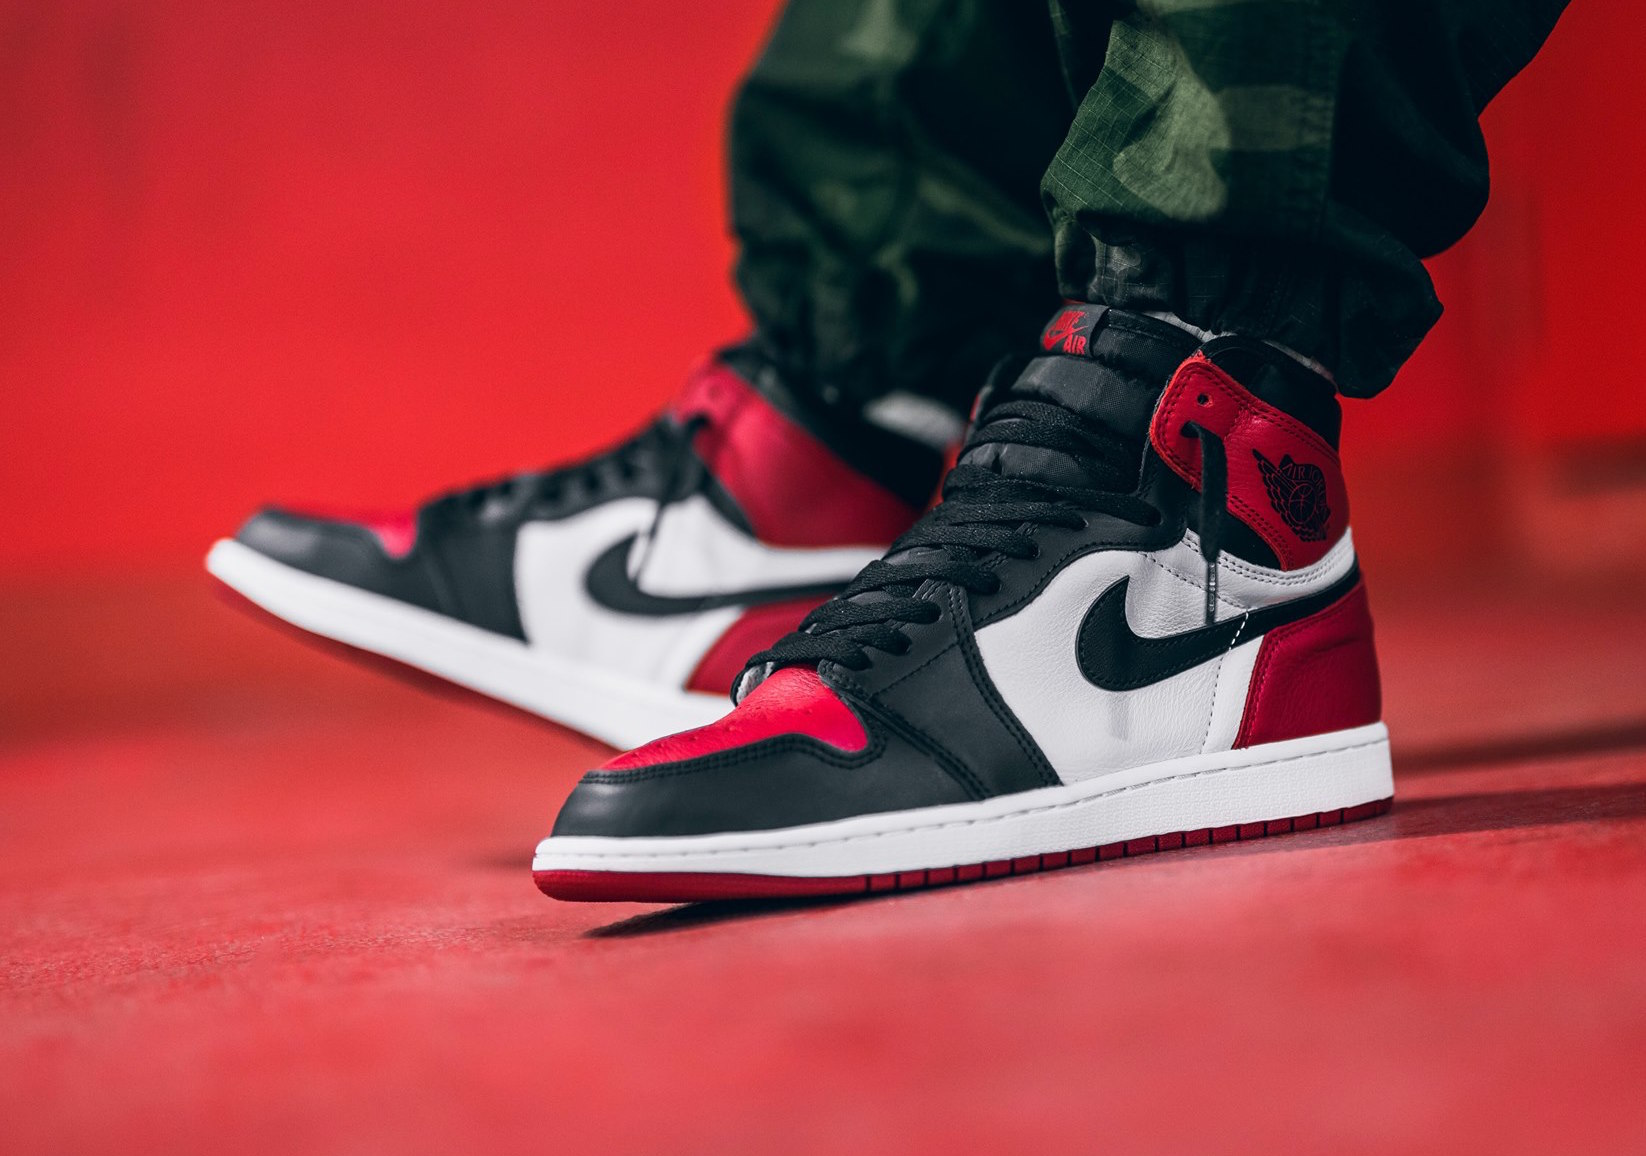 huge discount b7ae2 1c68a The Air Jordan 1 Retro High OG